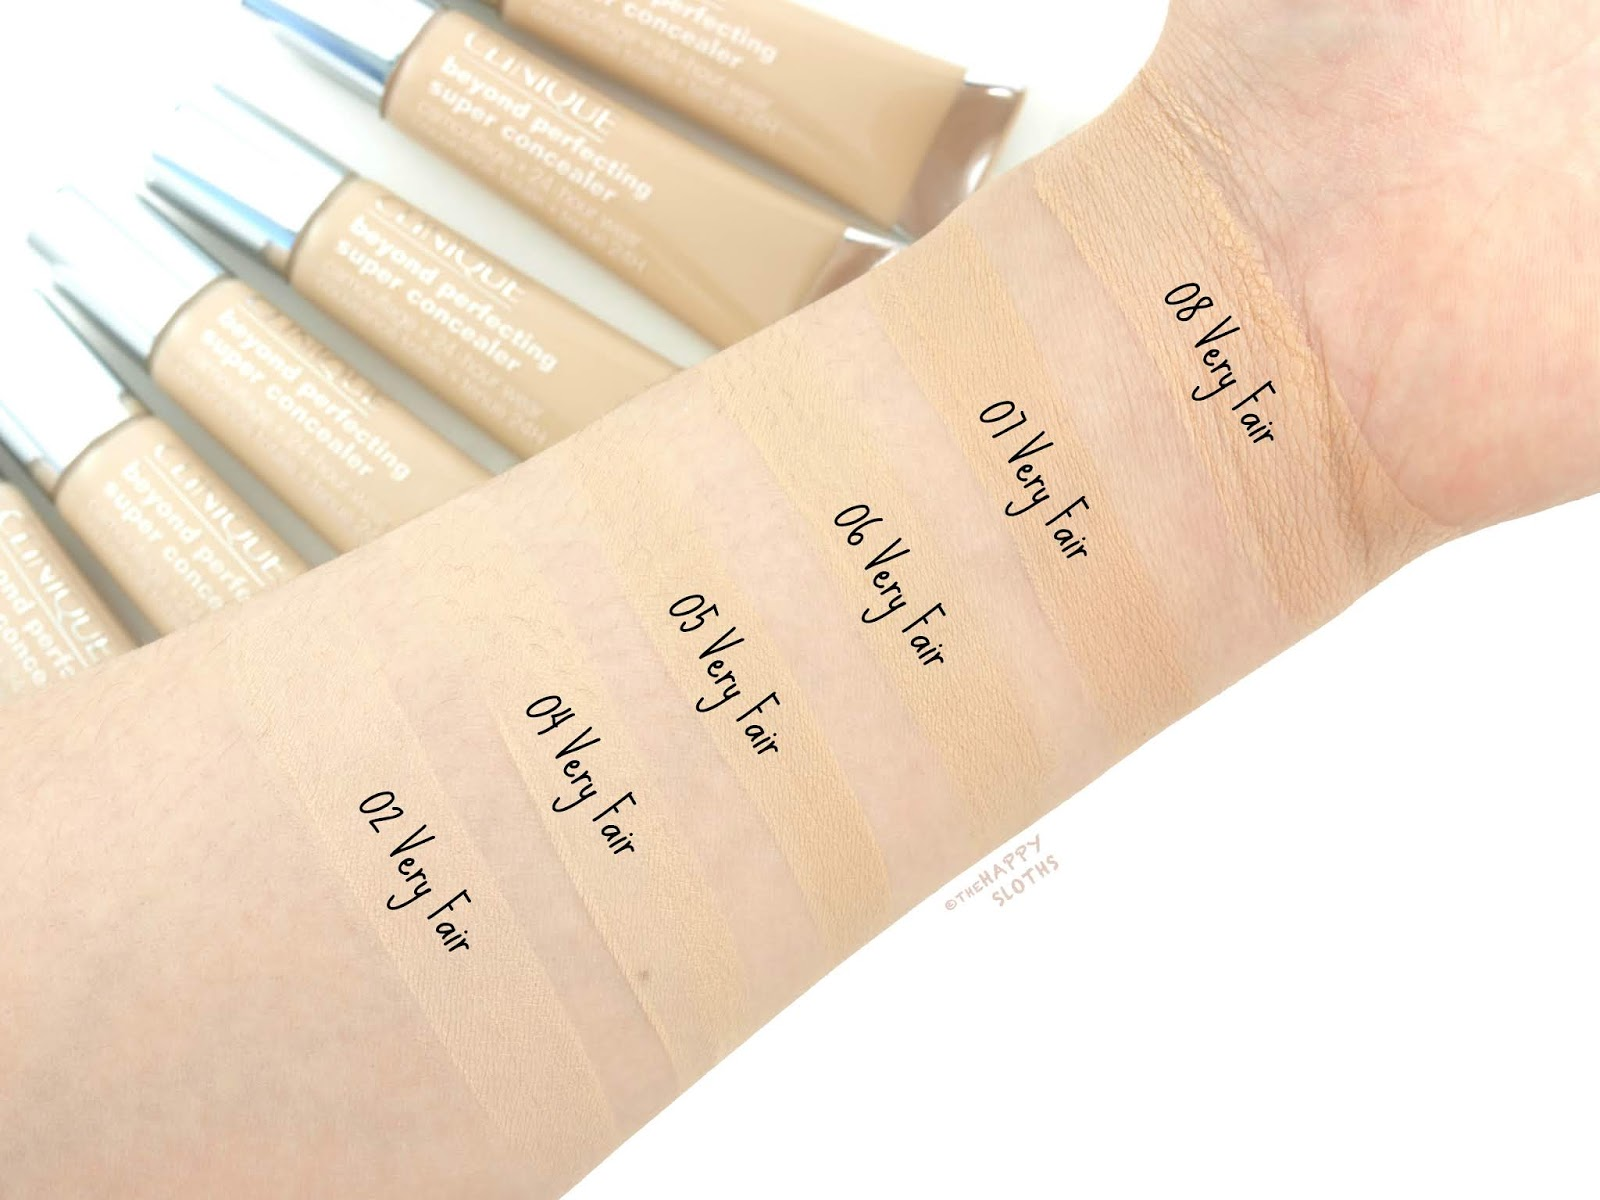 Clinique | Beyond Perfecting Super Concealer Camouflage + 24-Hour Wear: Review and Swatches